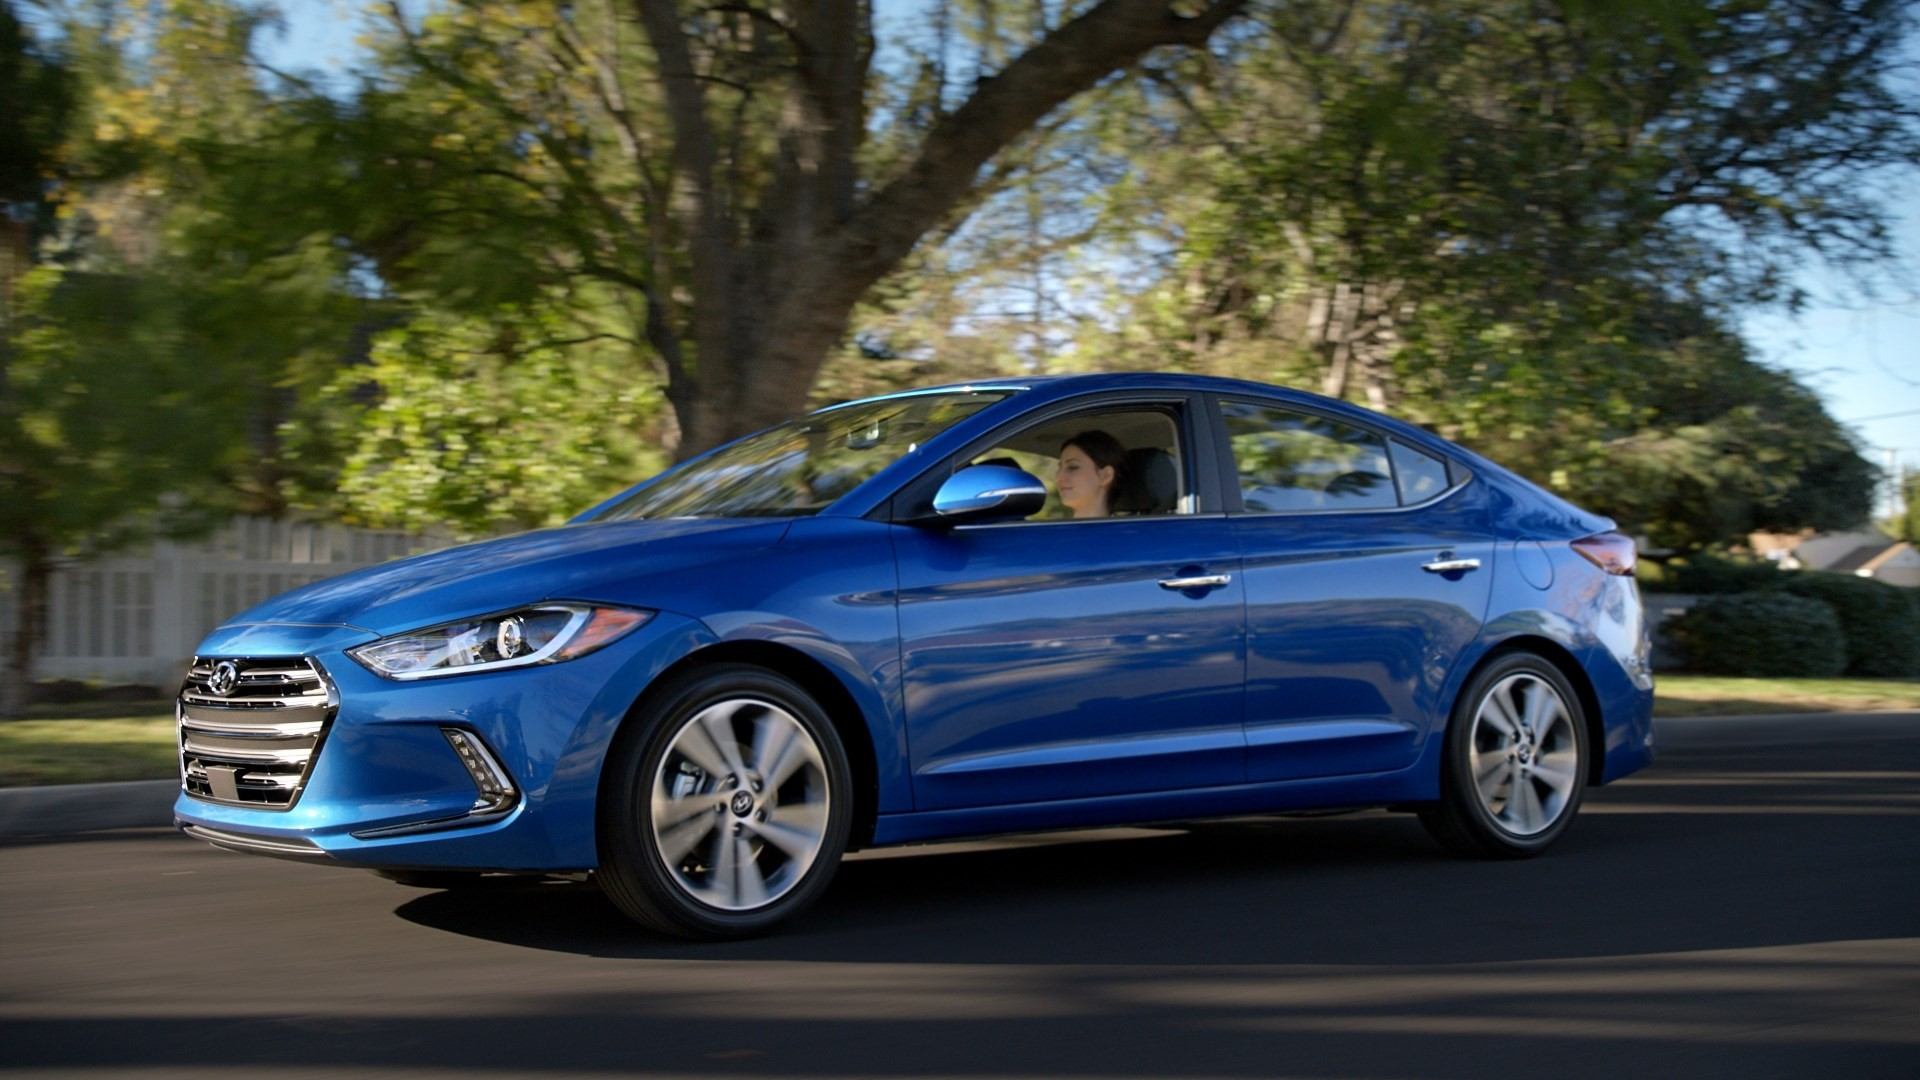 2016 Hyundai Super Bowl Ads